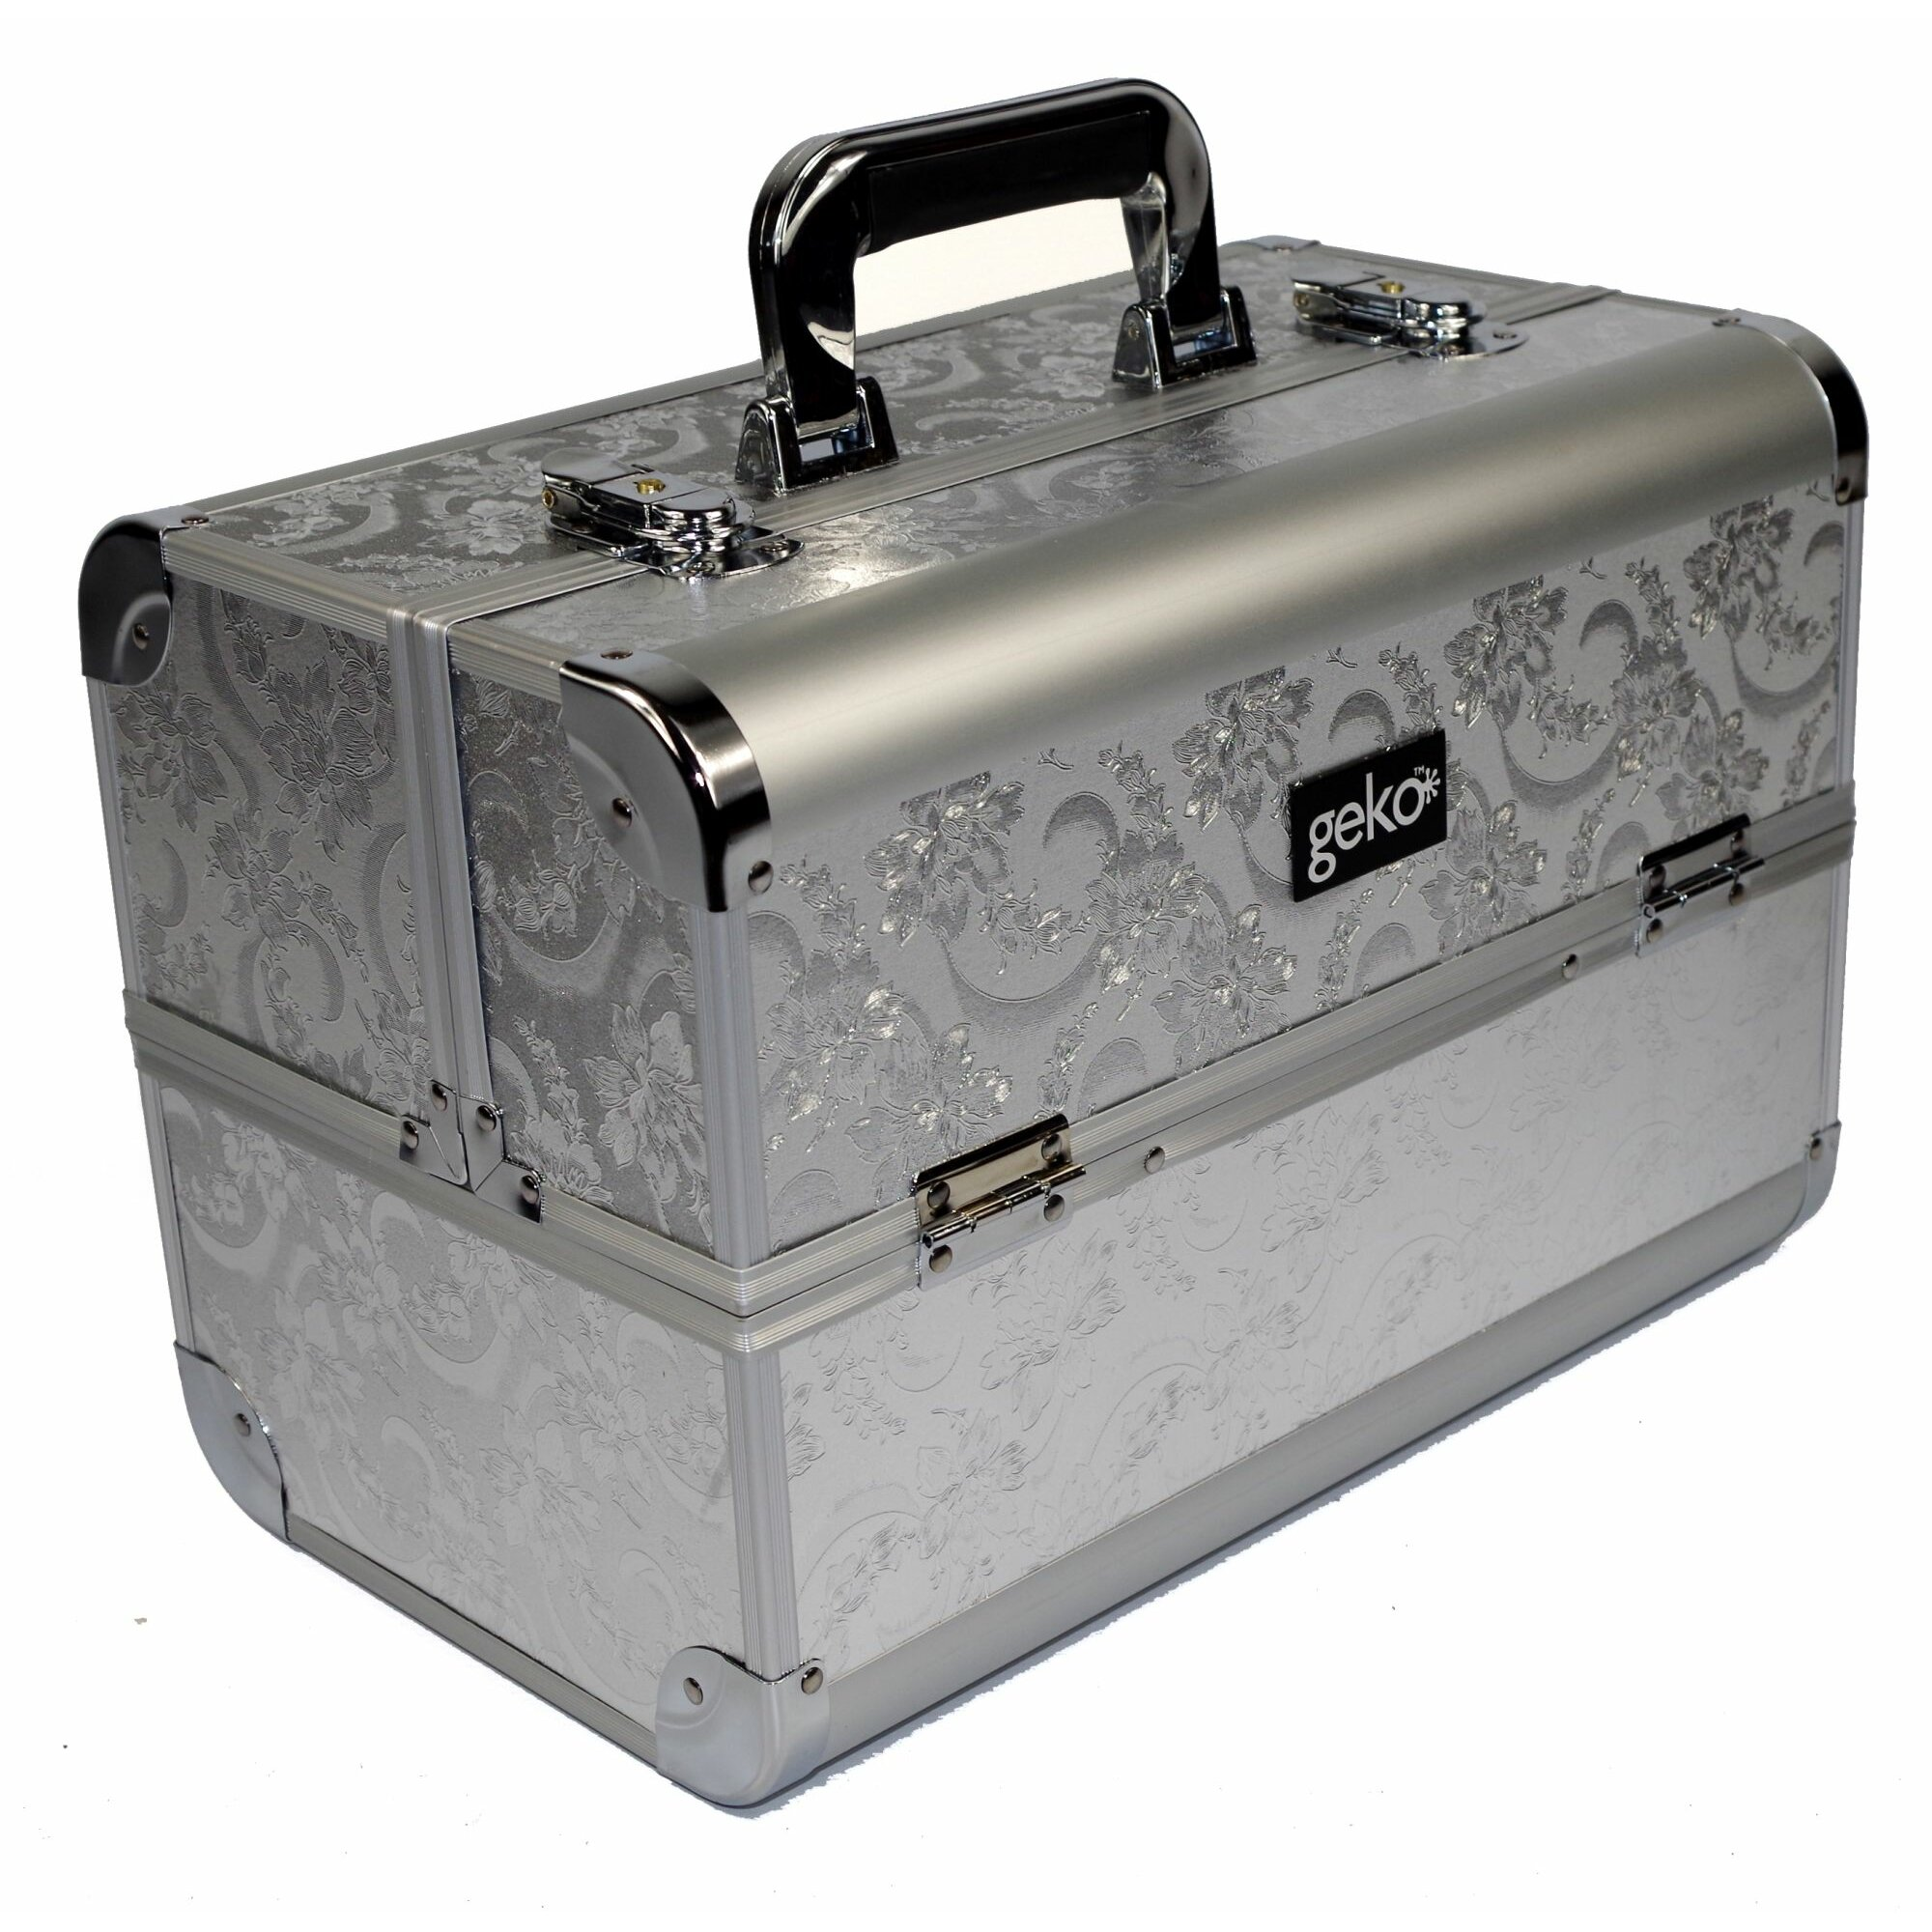 Geko Products Vanity Case Makeup Box In Silver amp Reviews